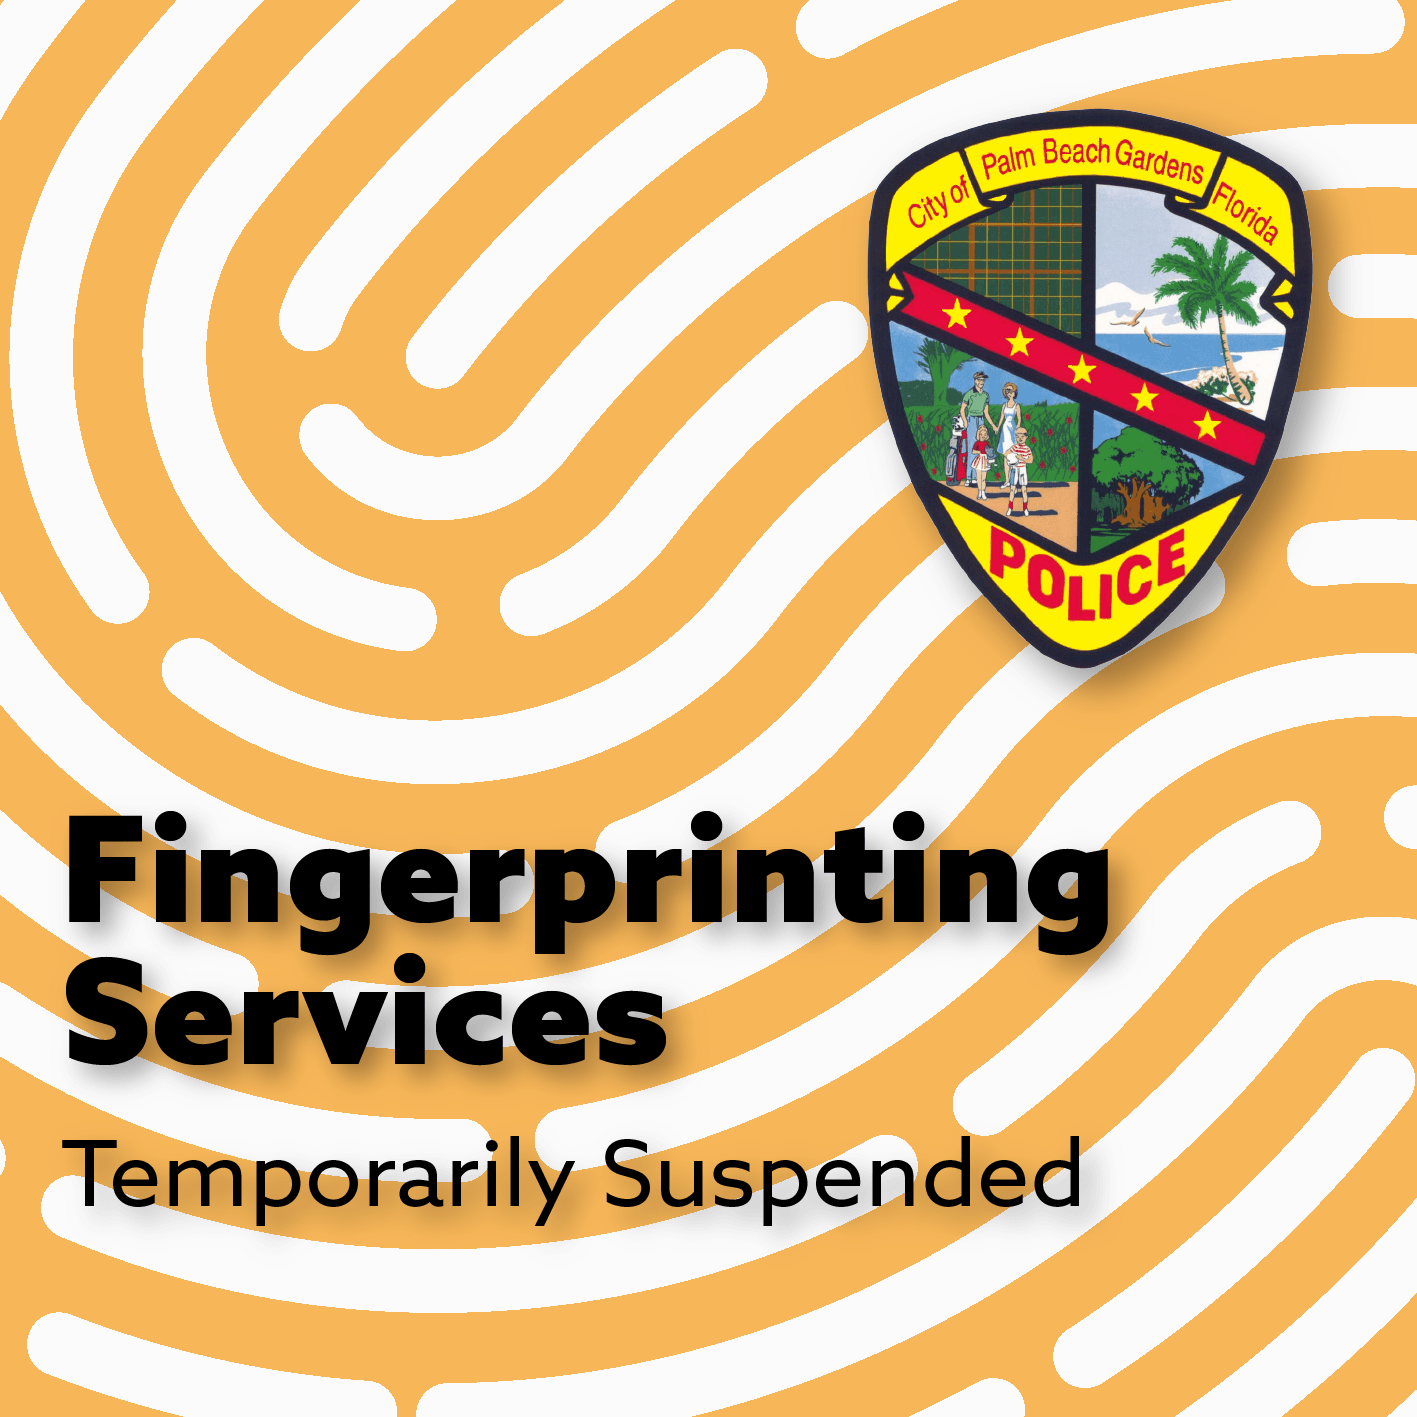 Police Department fingerprinting services temporarily suspended.